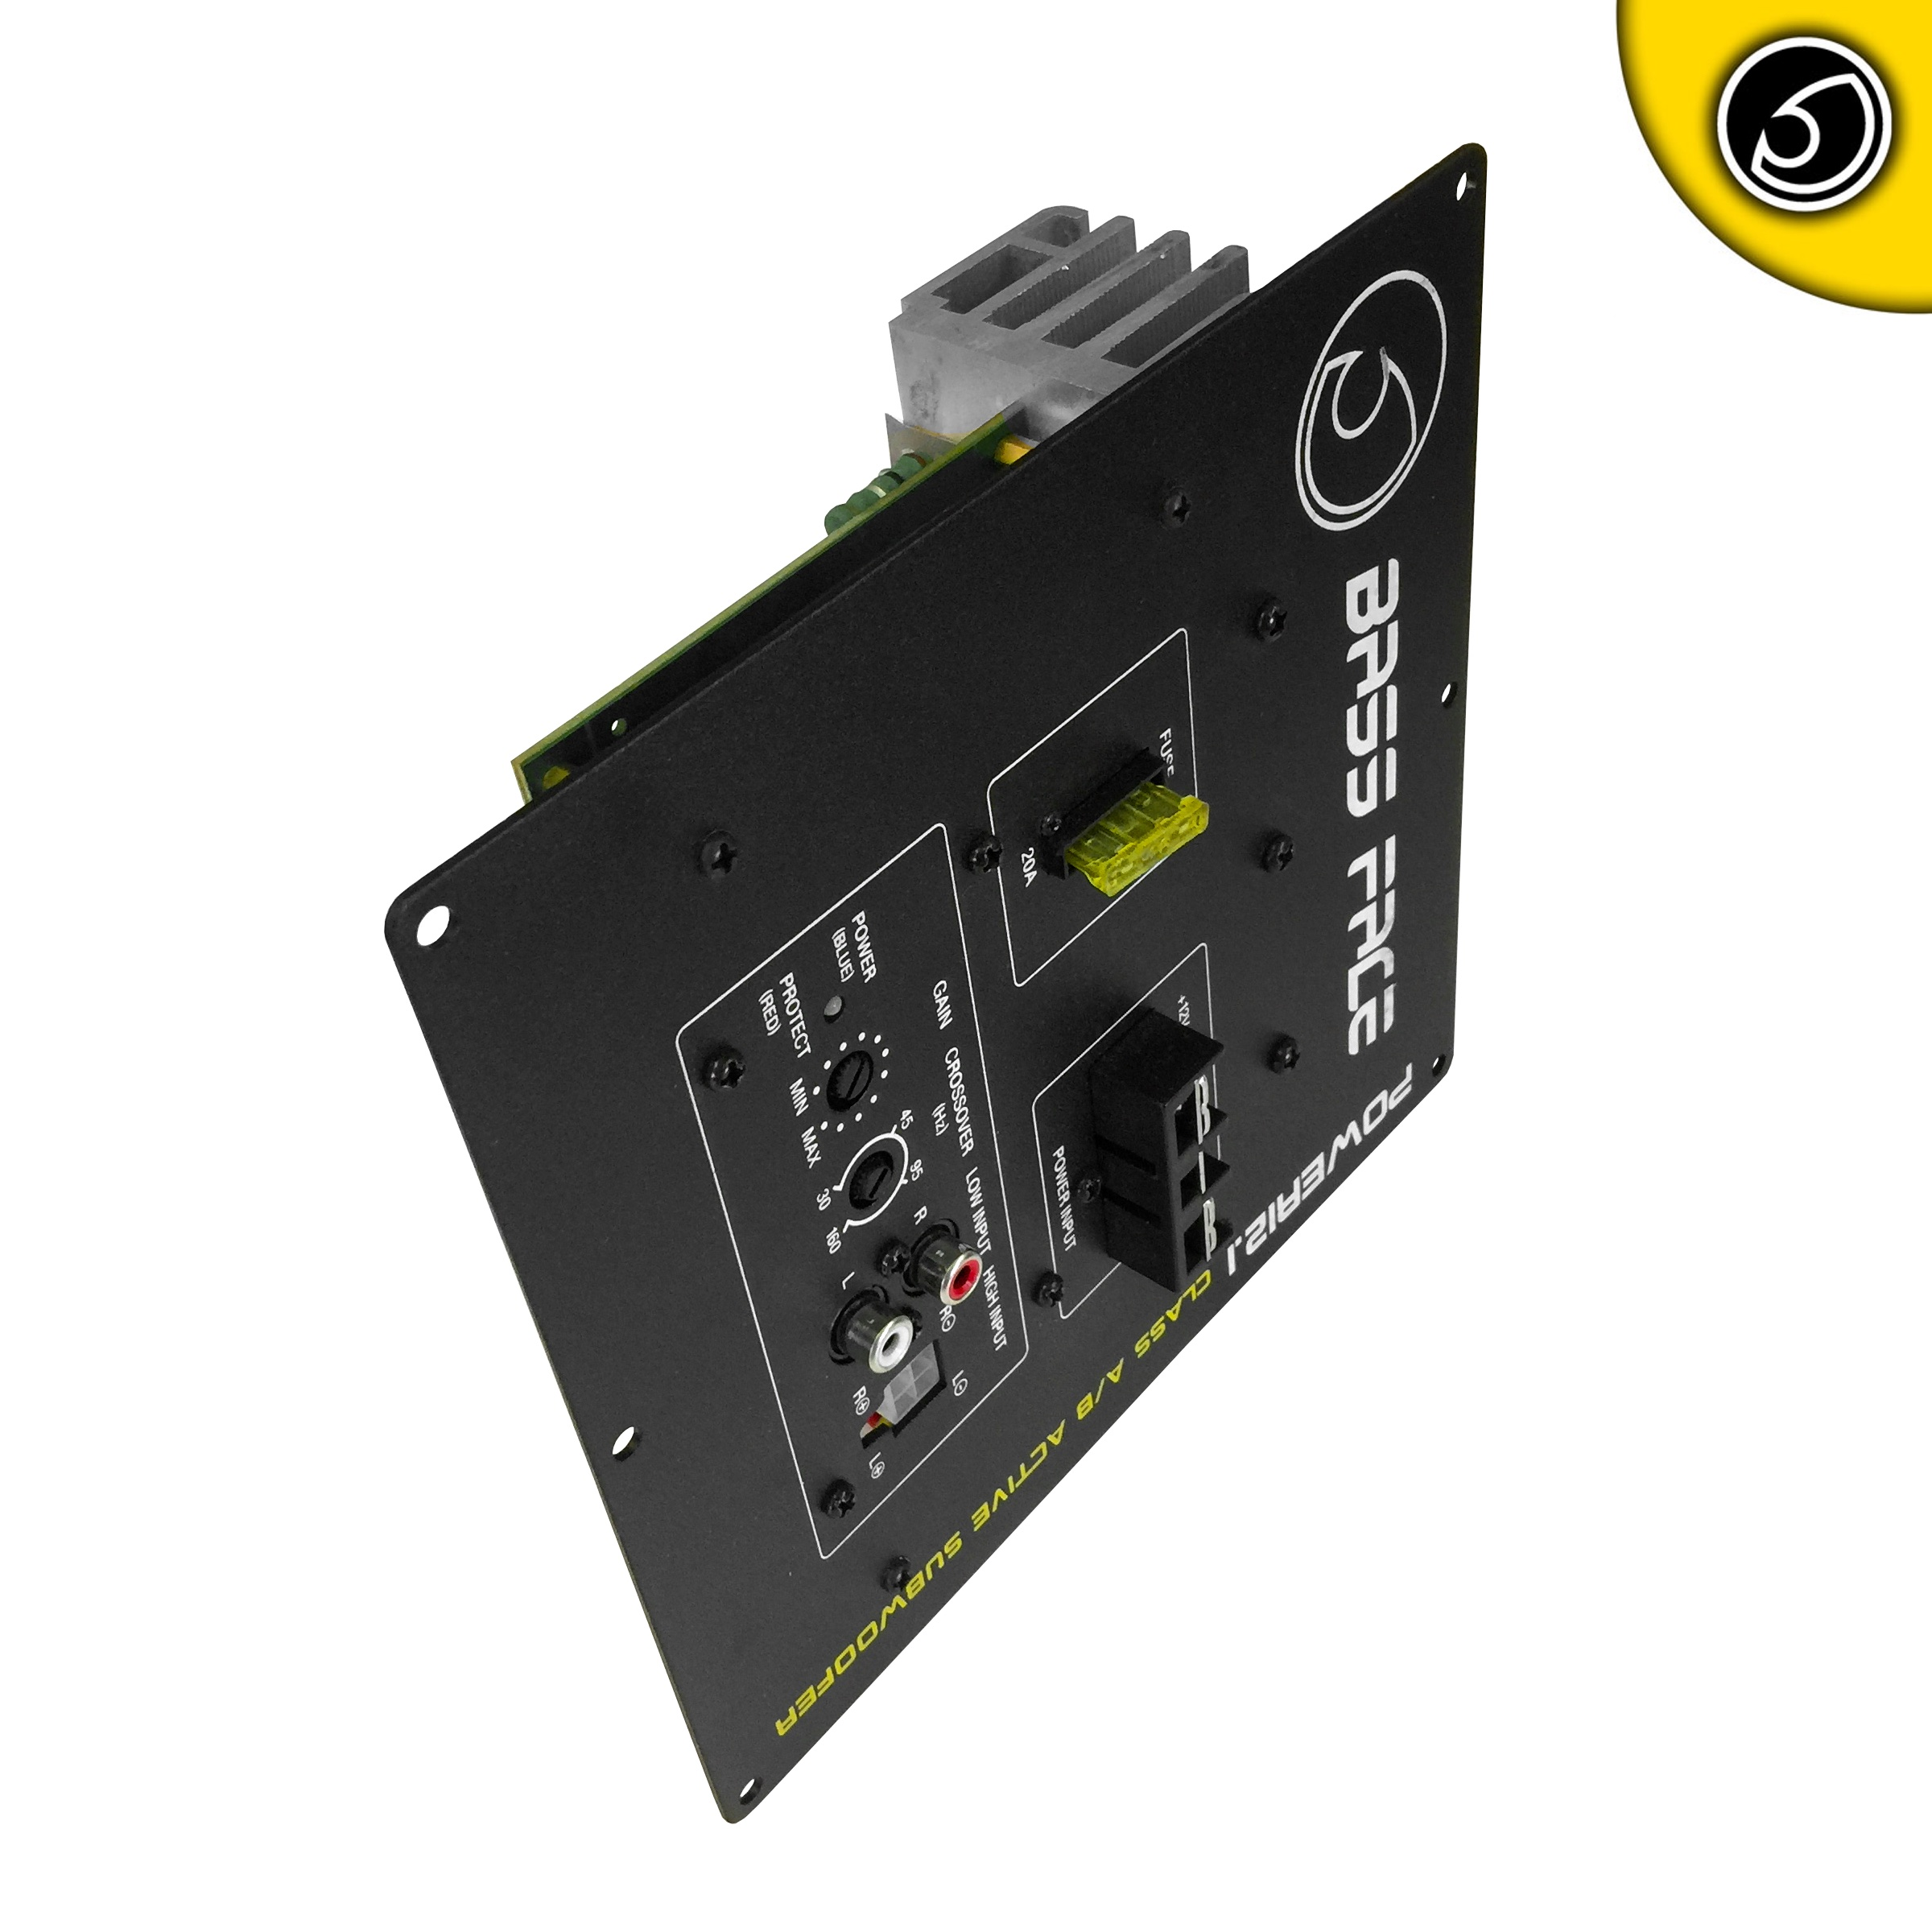 Bassface POWER12.1A Replacement Amplifier for POWER12.1 Active Bass Box